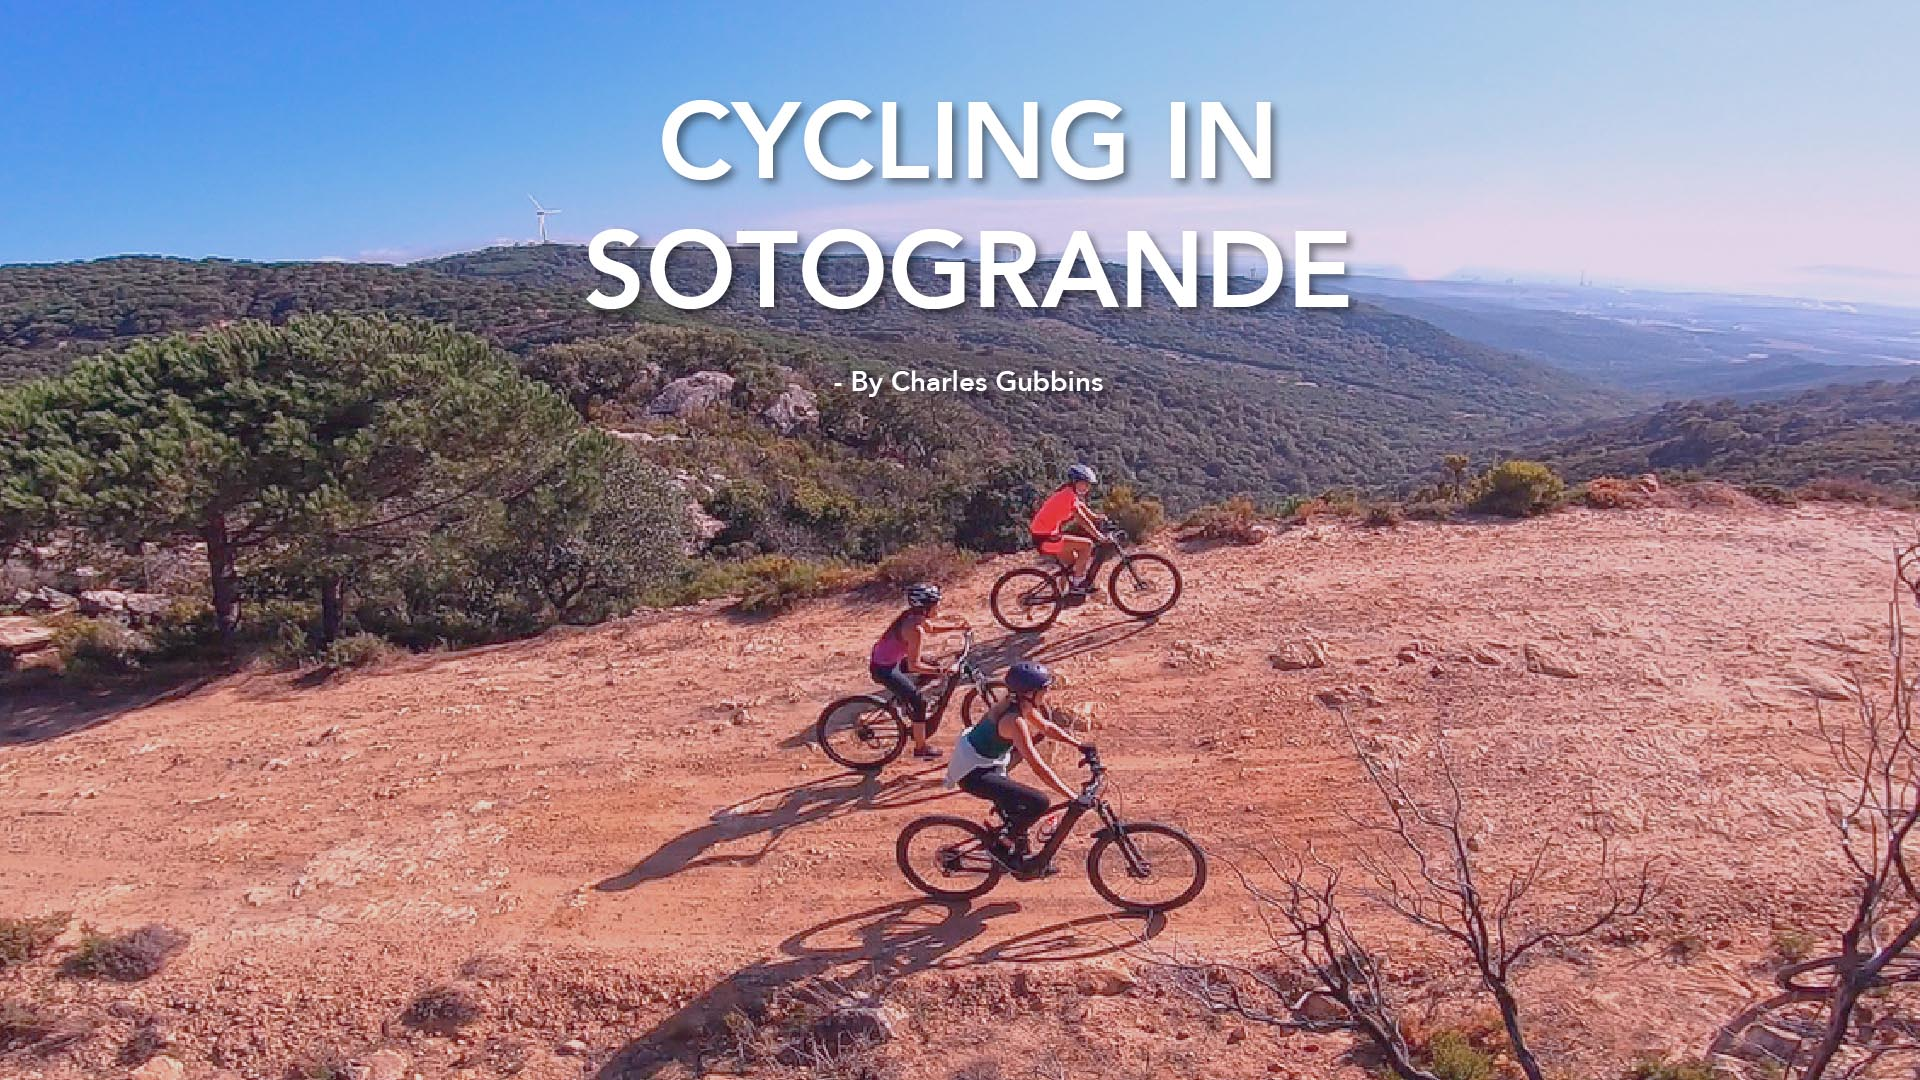 cycling in sotogrande serendipity ebike tour rental sale noll blog 2021